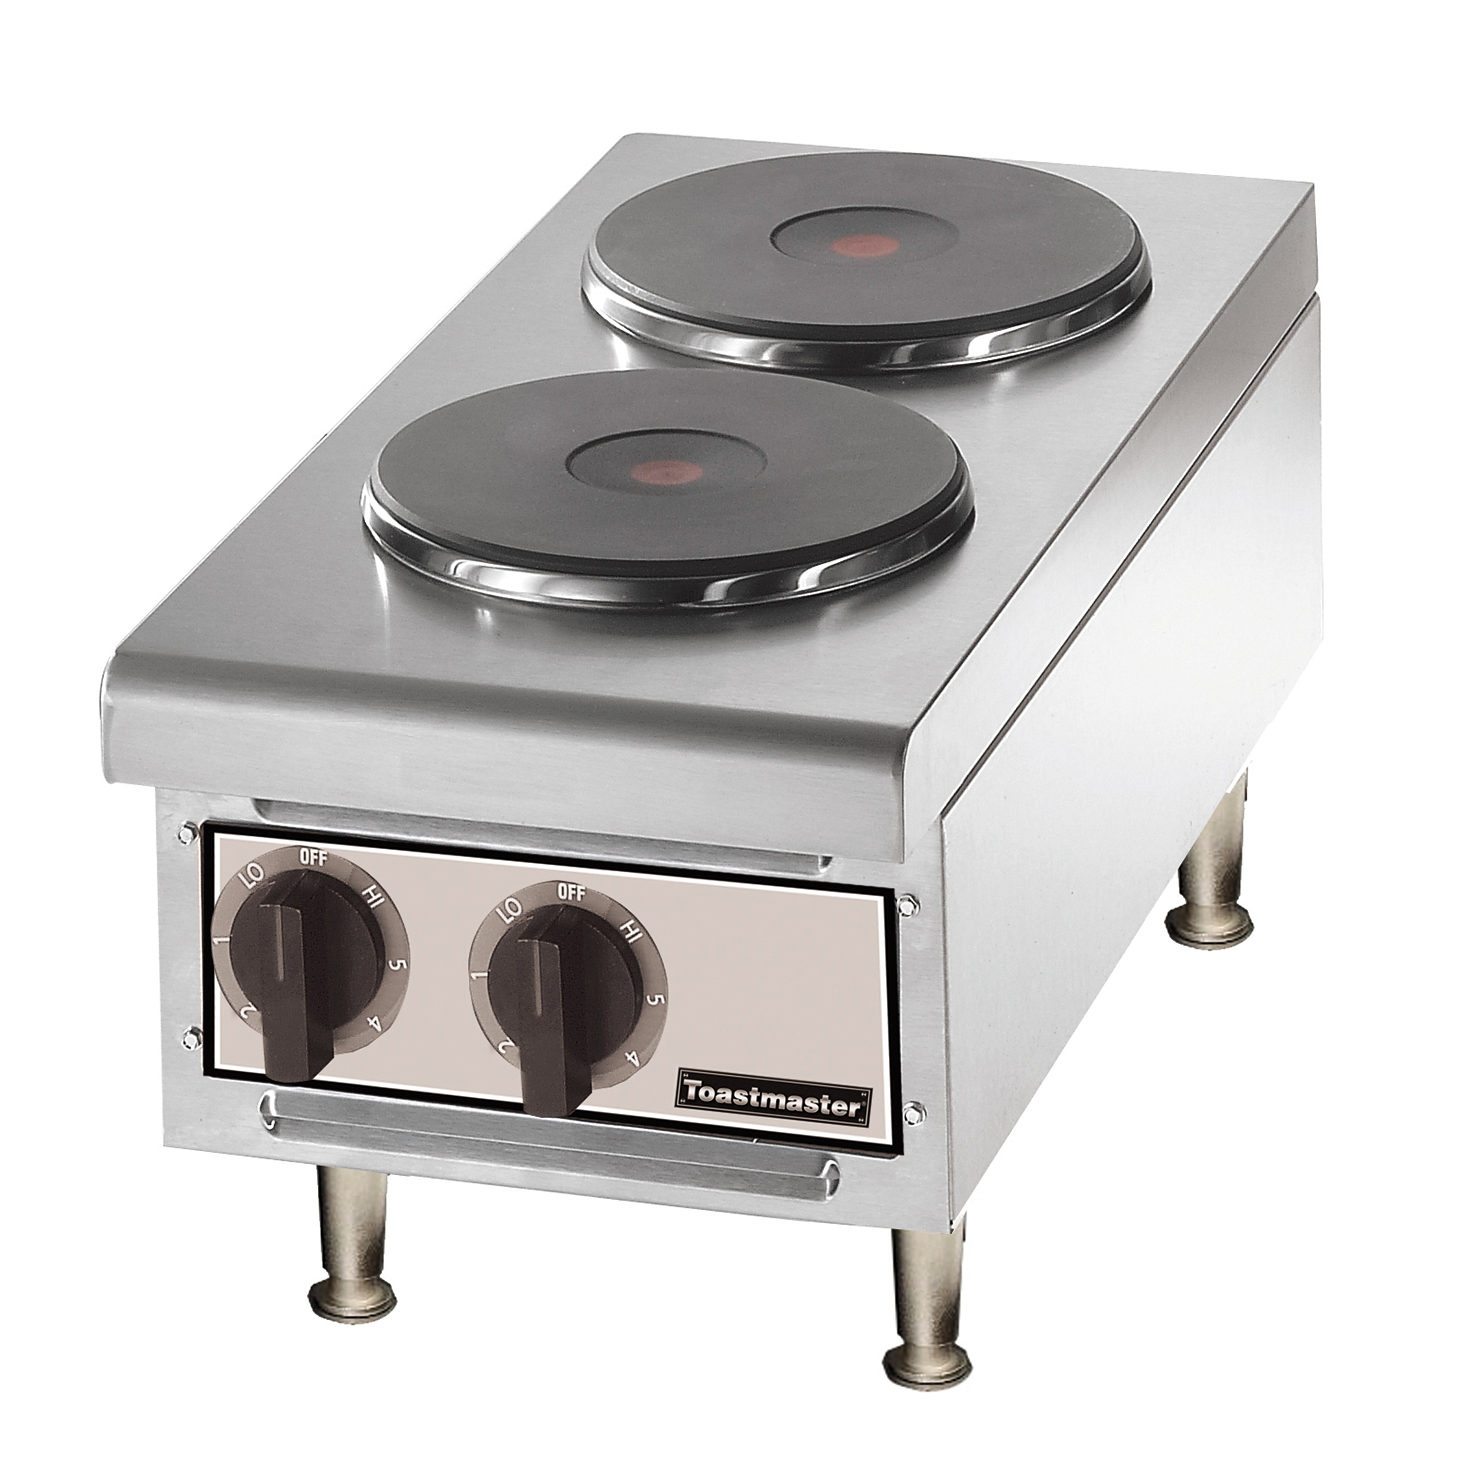 Toastmaster TMHPF hotplate, countertop, electric